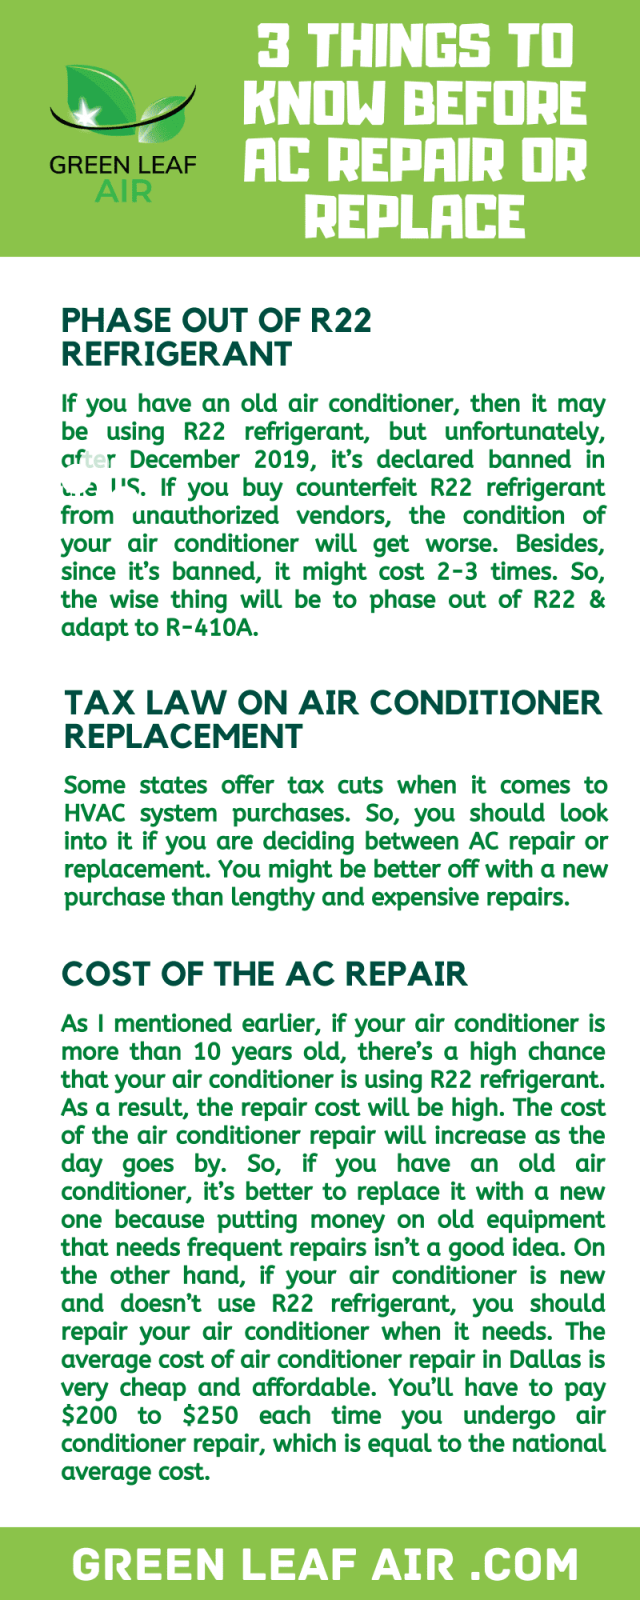 3 Things to Know Before AC Repair or Replace